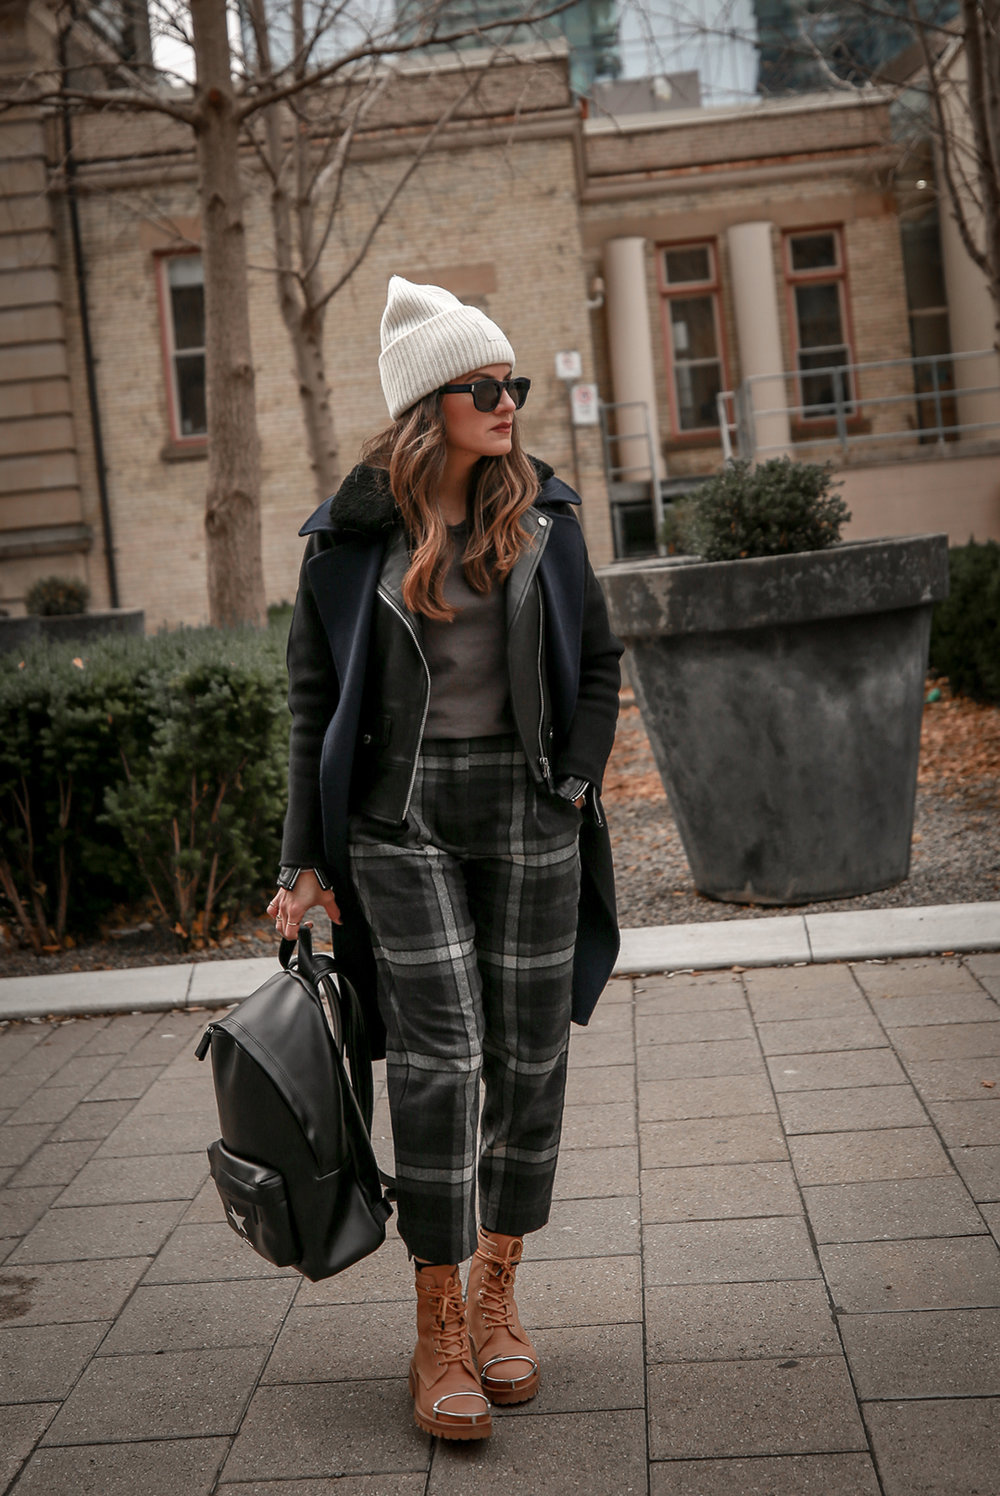 Nathalie Martin wearing Aritzia Chambery plaid pant, Rudsak Mythos leather:shearling jacket, Alexander Wang Lyndon boots, Acne Studios Pansy face beanie ivory, Saint Laurent blue square glasses, Rag & Bone wool reversible coat, woahstyle.com_4412.jpg